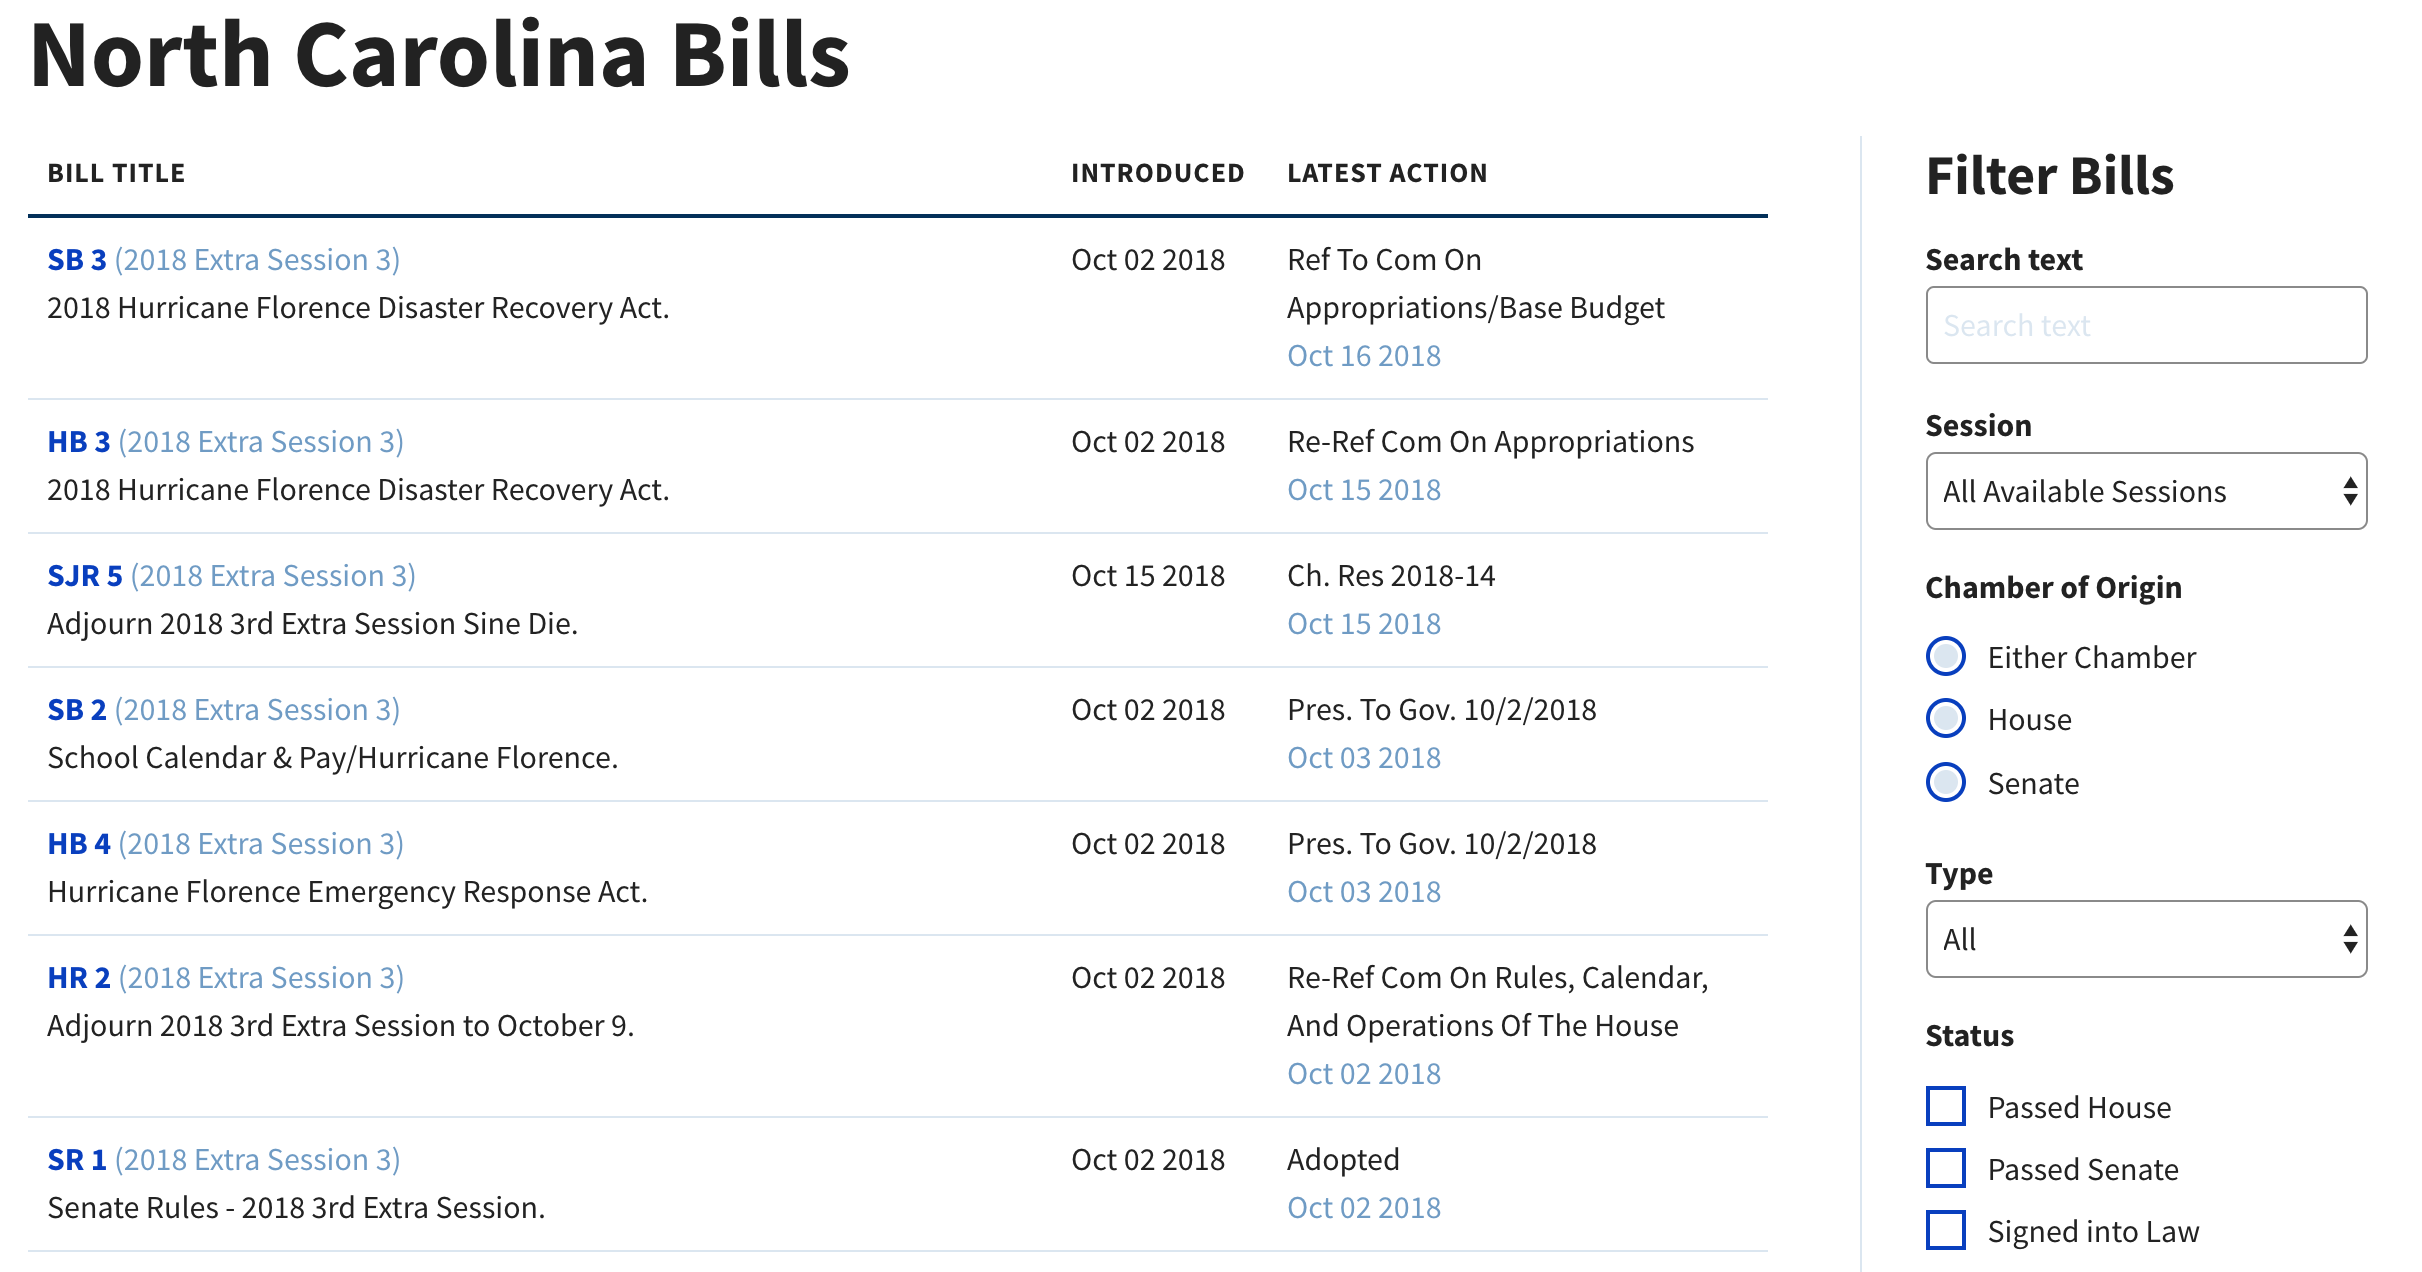 The bill search feature is aimed at helping users drill down to what they're interested in.